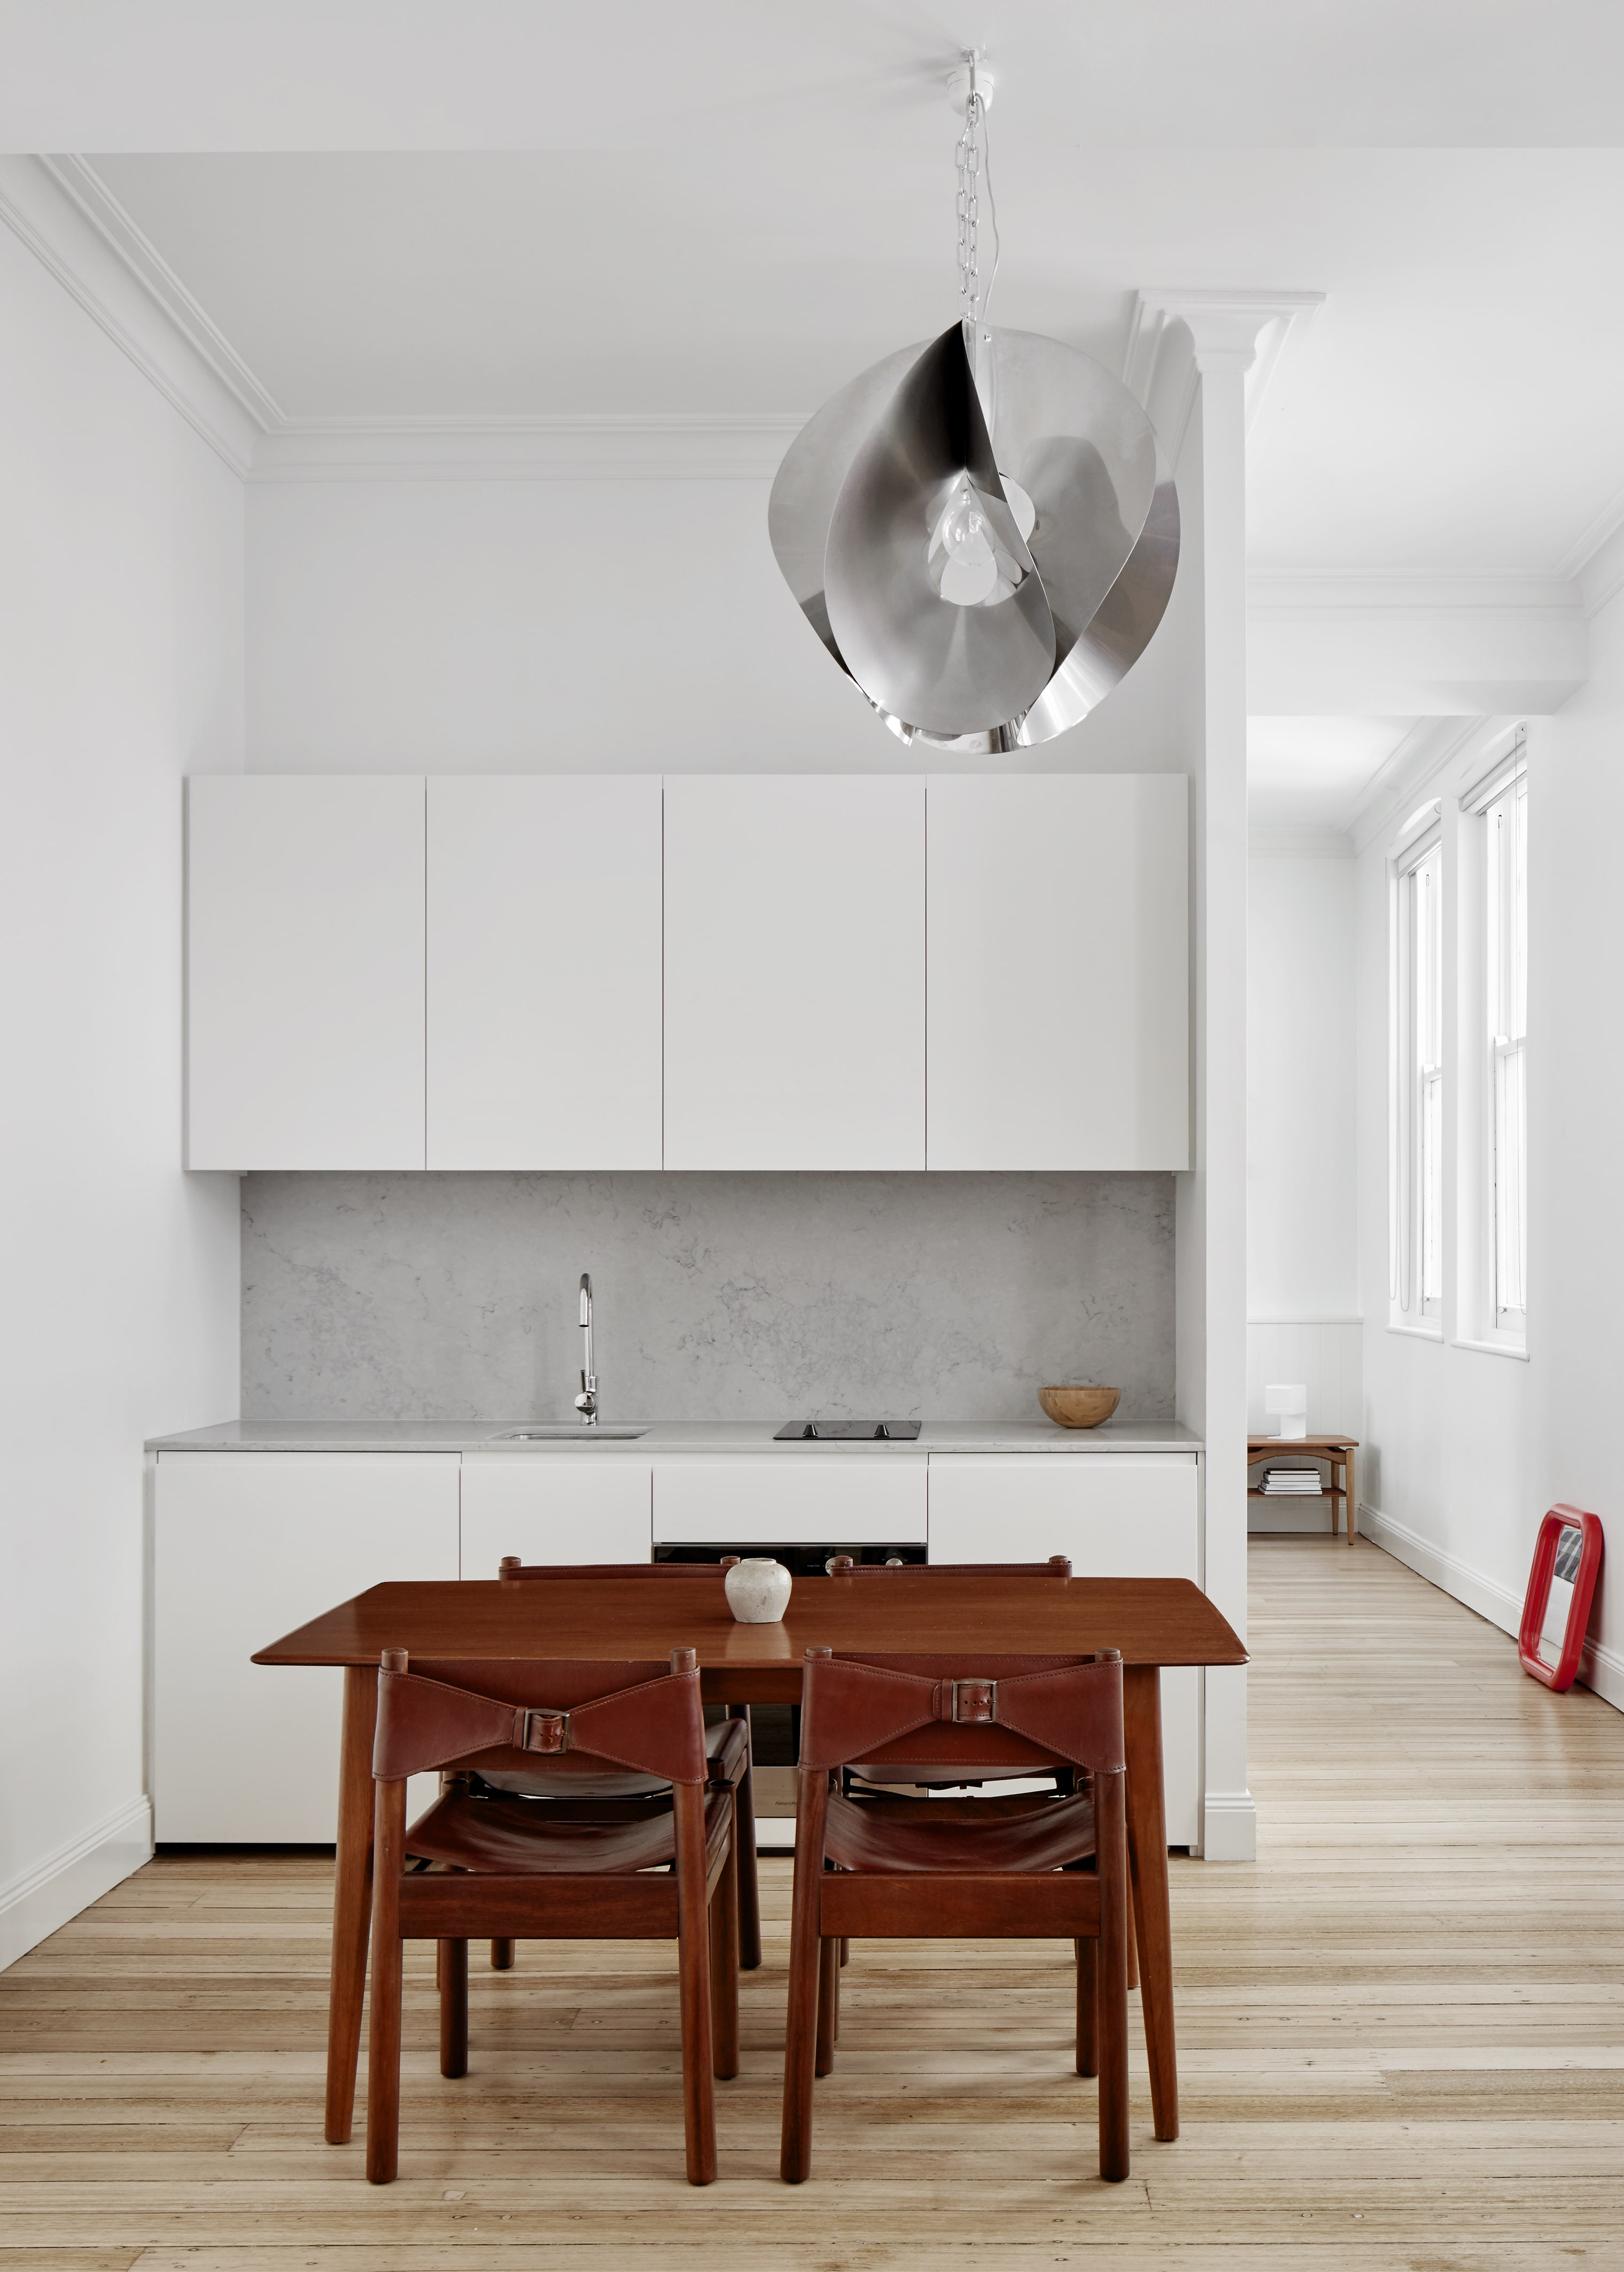 Gallery Of Flinders Lane Apartment By Nicholas Gurney Local Australian Bespoke Architecture Melbourne, Vic Image 5